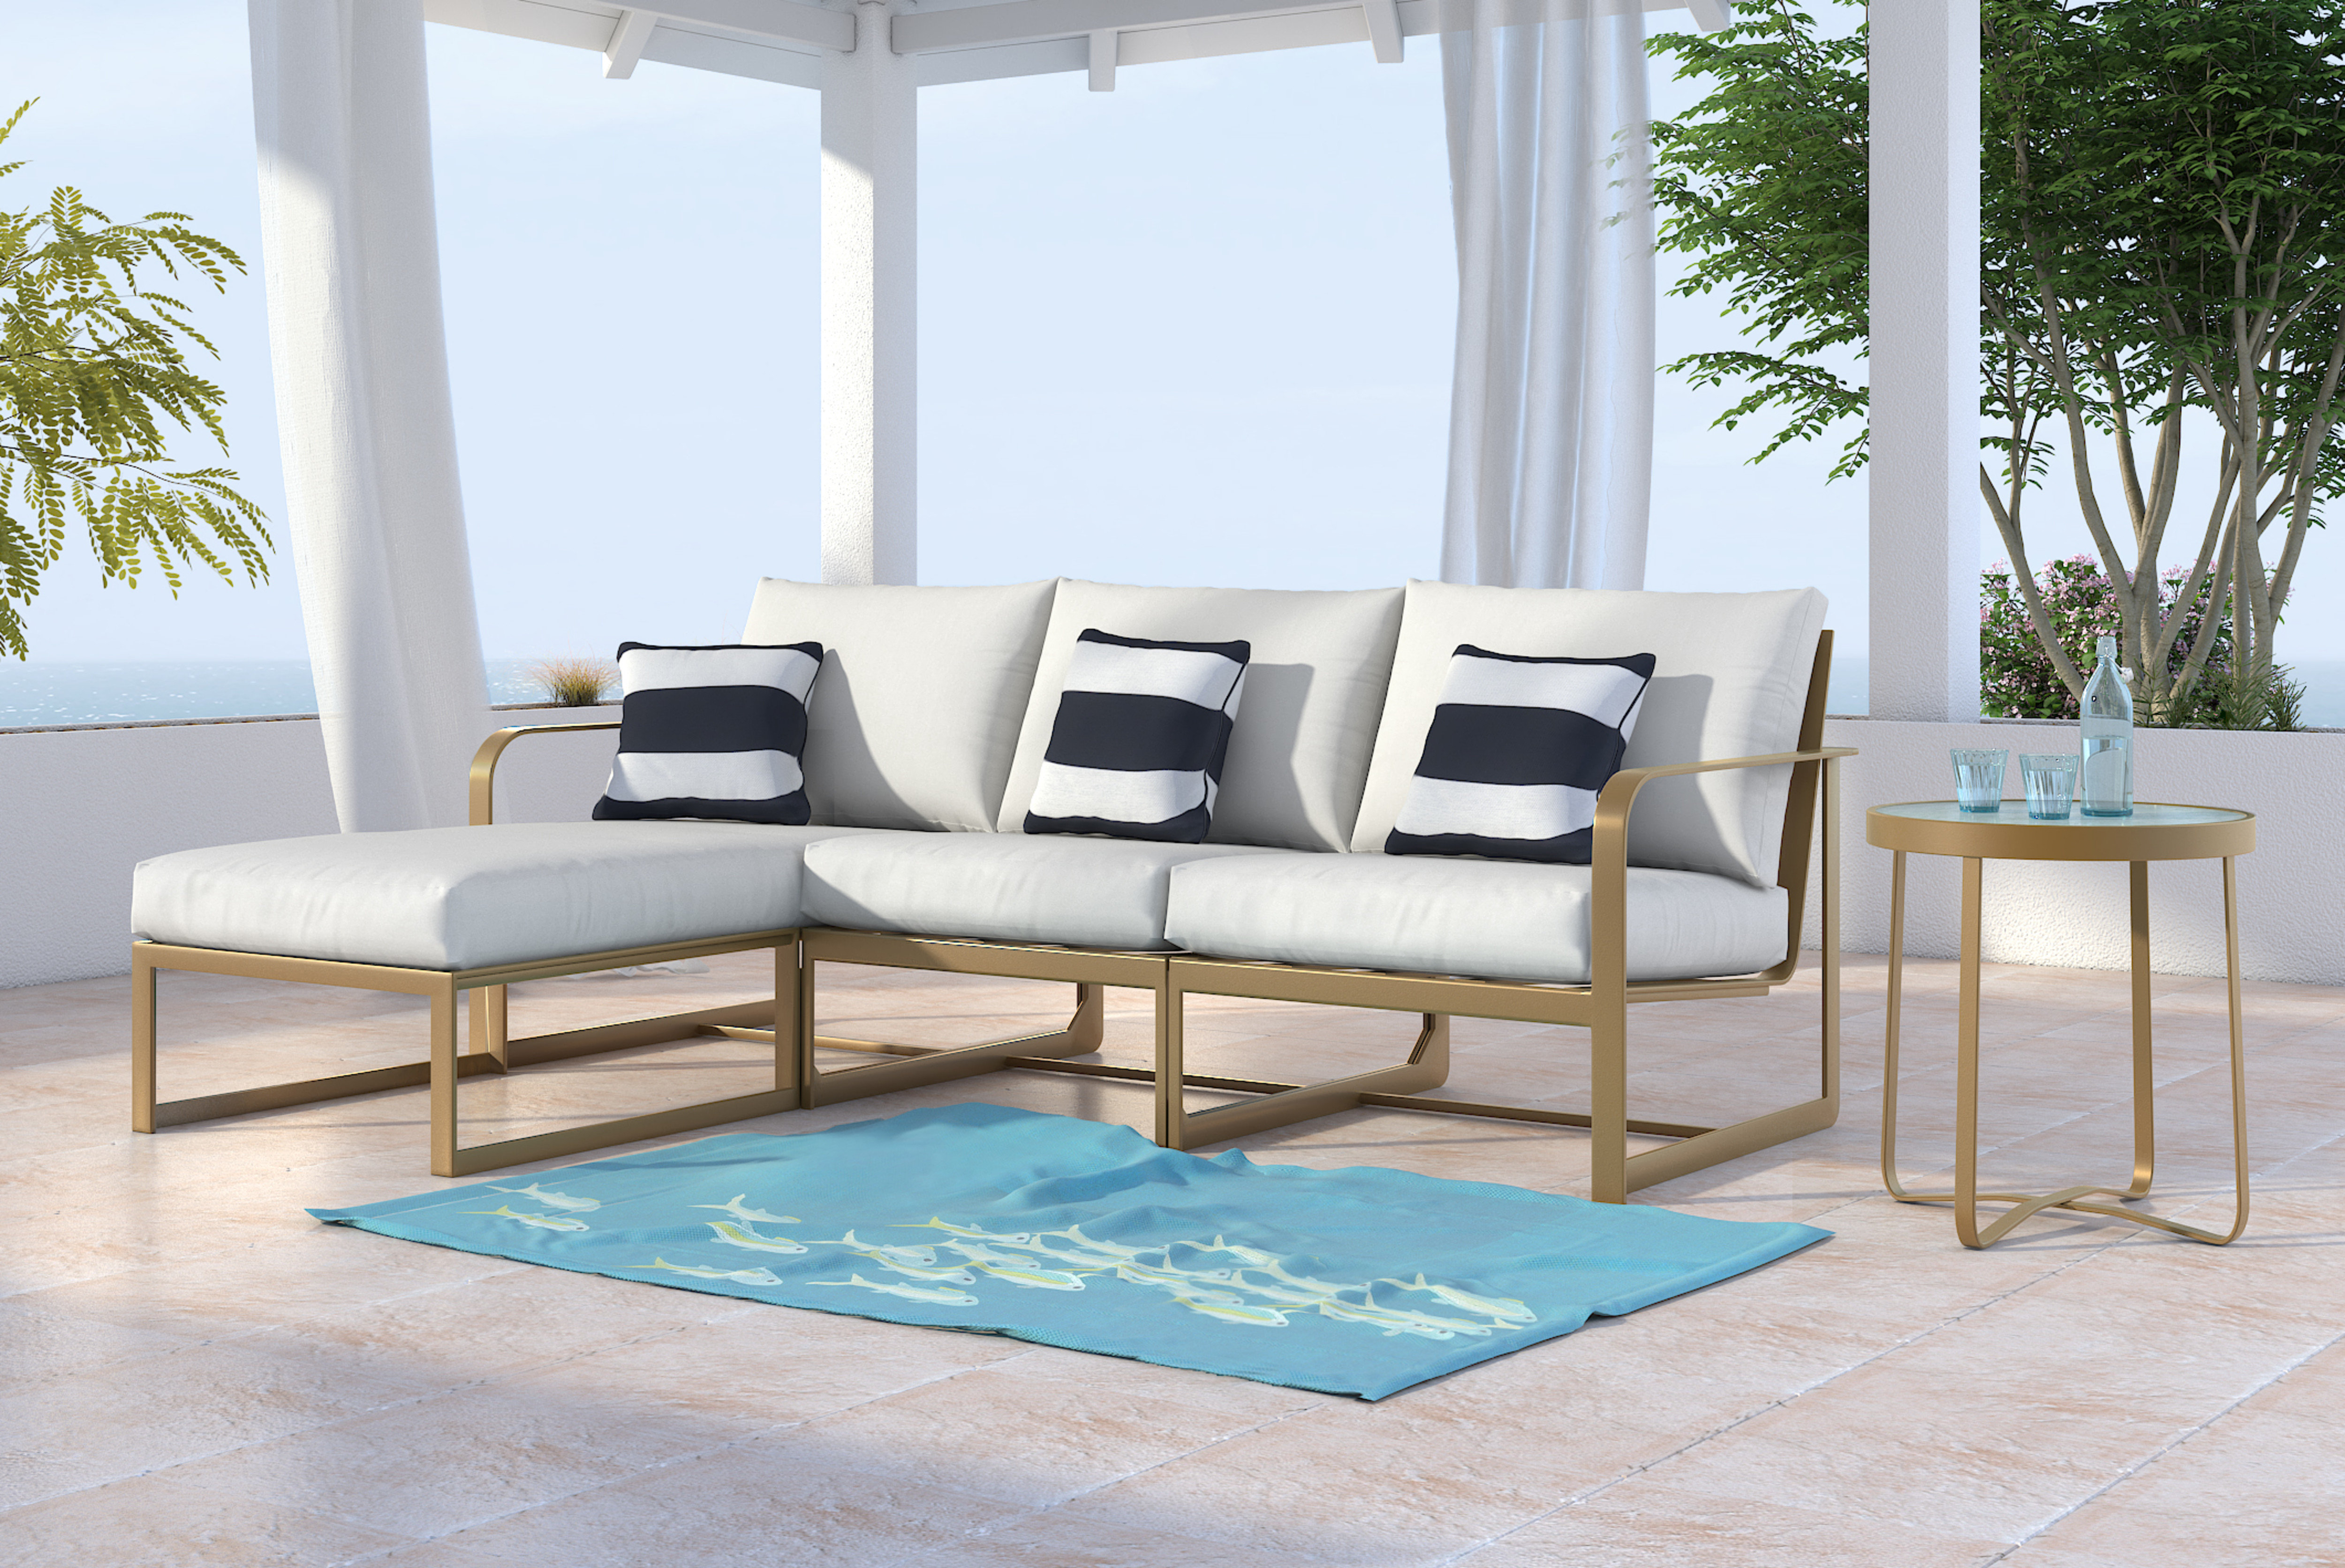 Fashionable Paloma Sectionals With Cushions Intended For Mirabelle Patio Sectional With Cushions (View 5 of 20)